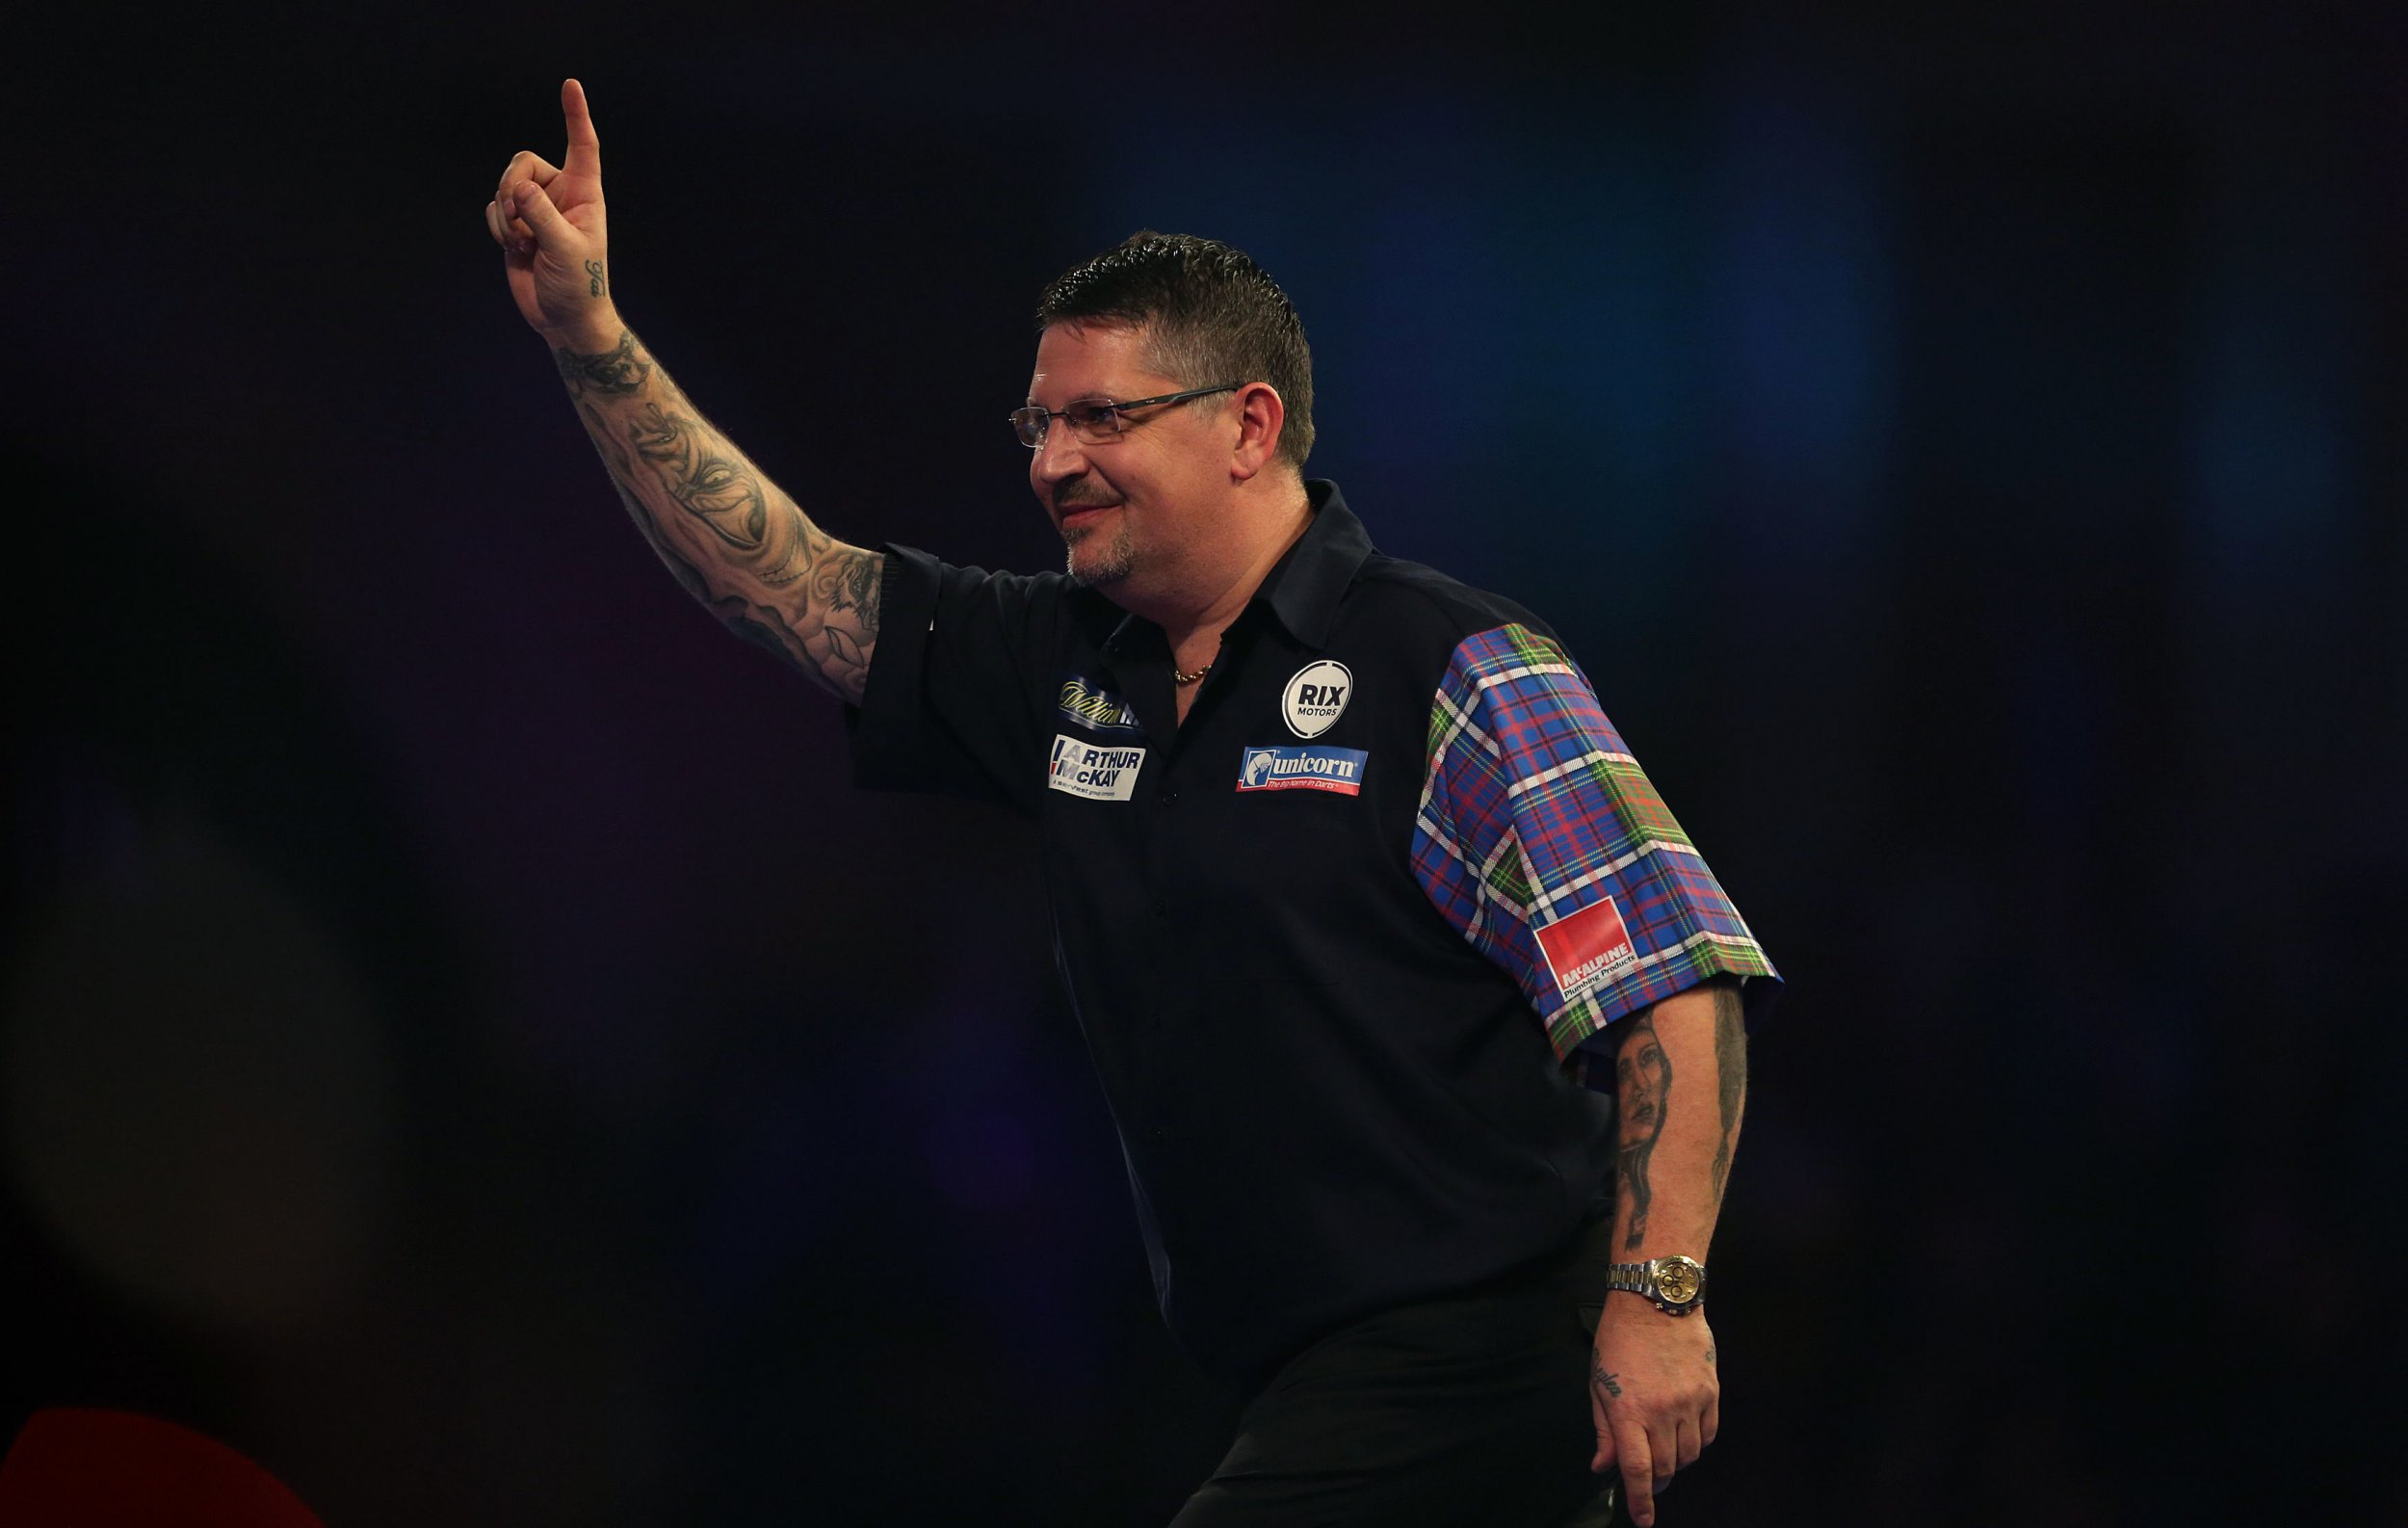 Gary Anderson squeaks past Chris Dobey in PDC World Championship classic